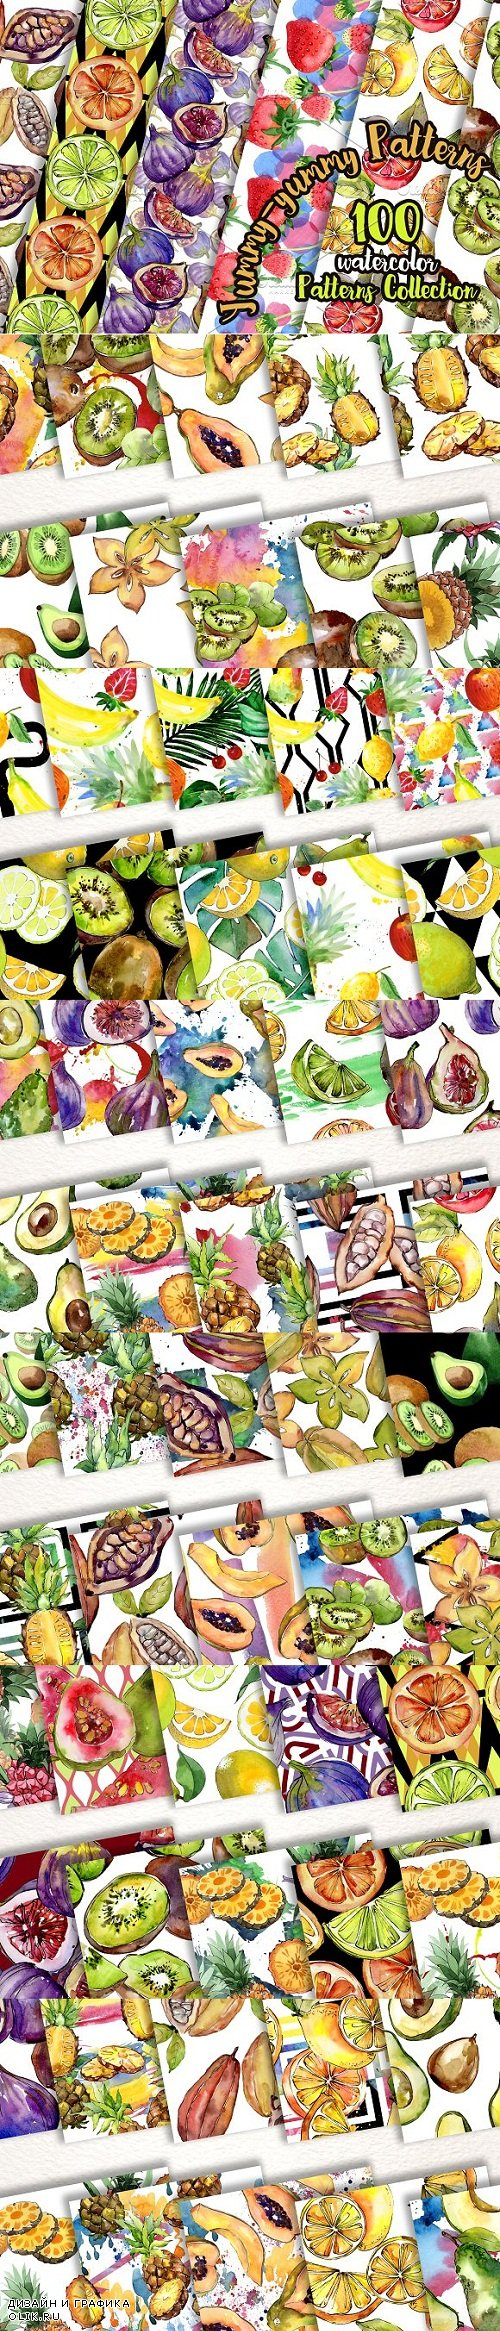 Yummy-yummy 100 patterns of fruits JPG watercolor set - 2876659 - 3482089